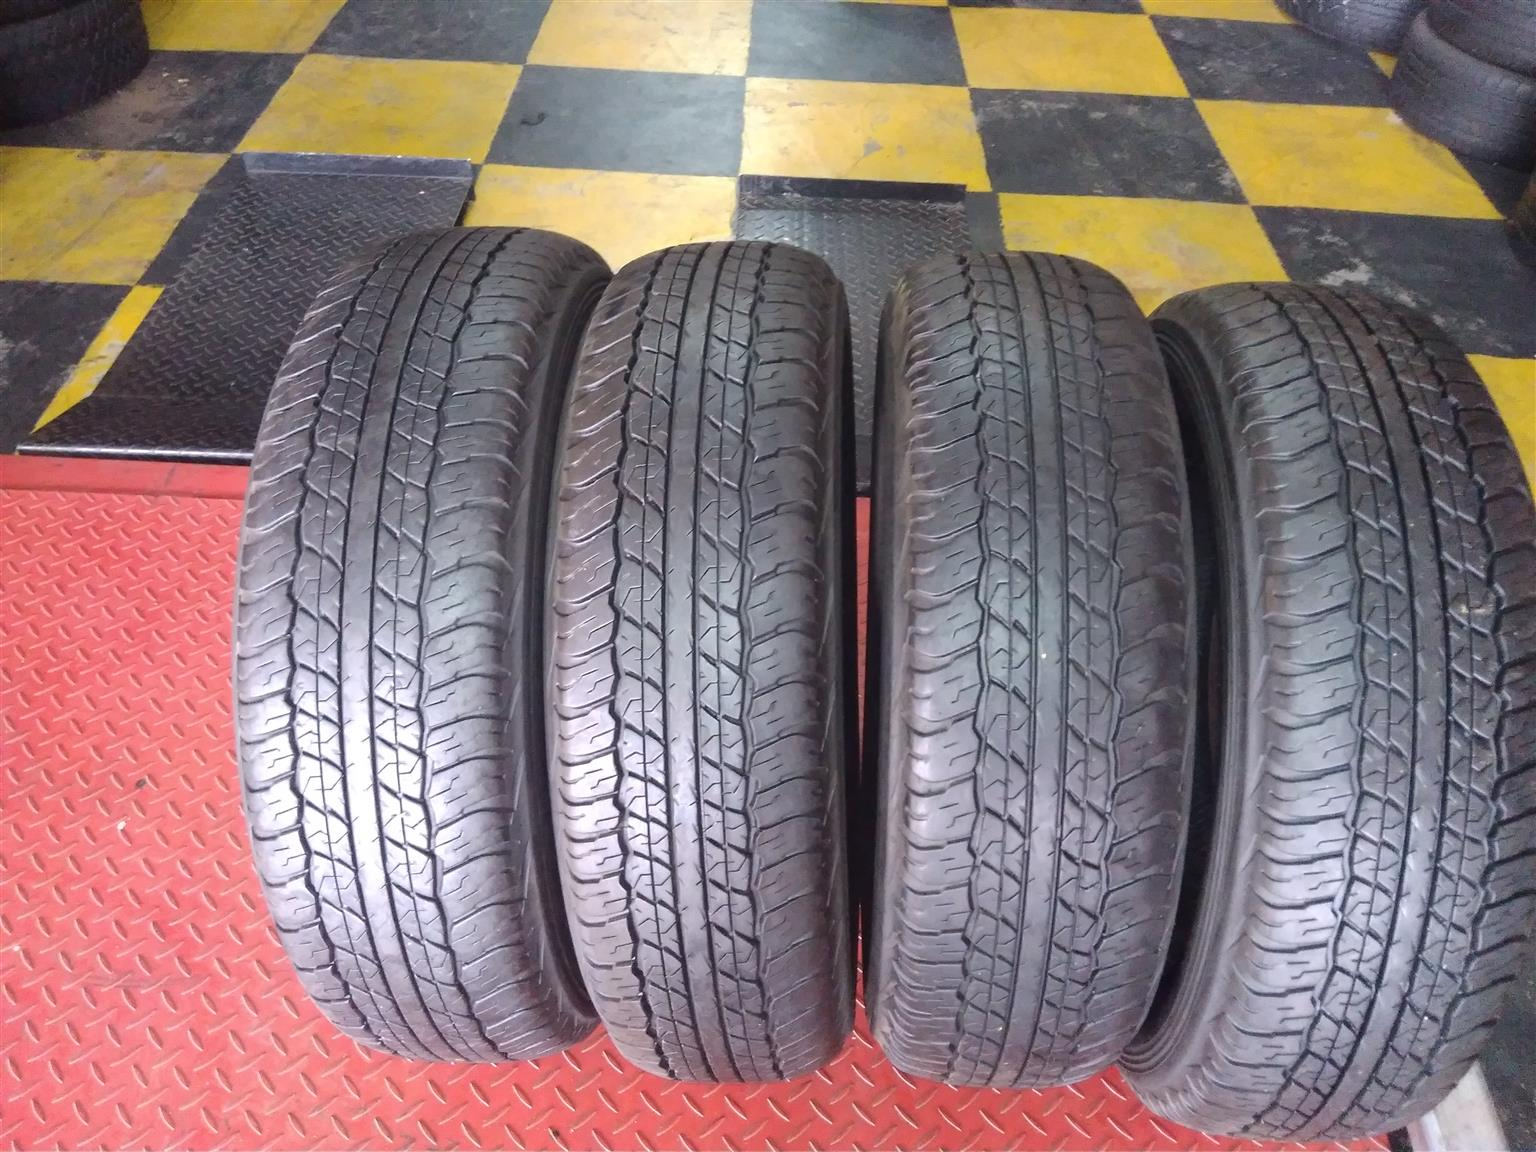 Set of 225/70/17c Dunlop AT2 tyres